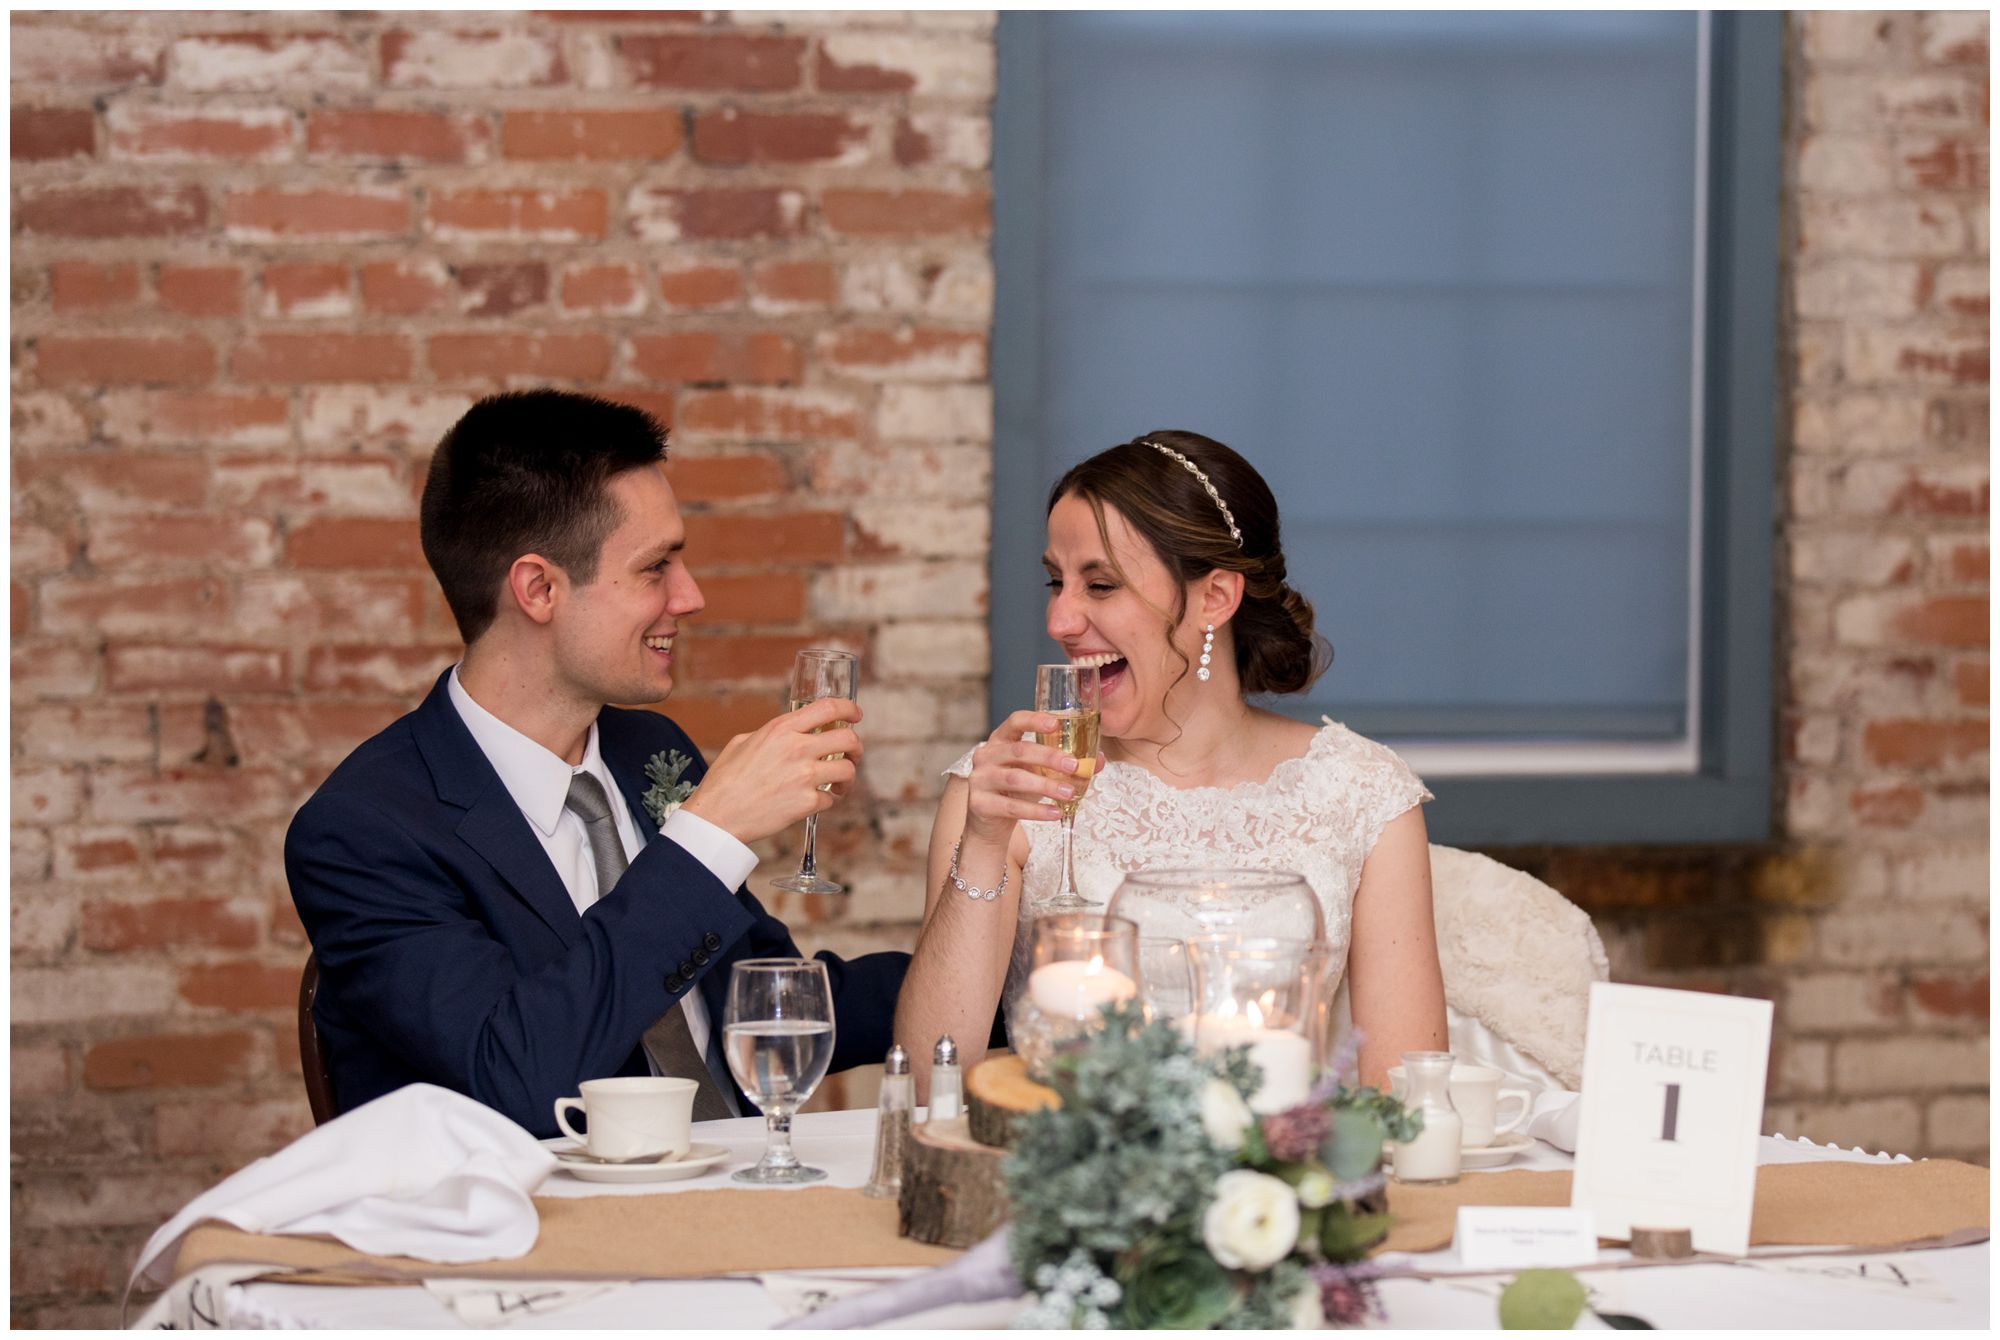 bride and groom toast during wedding reception speeches at Bread & Chocolate